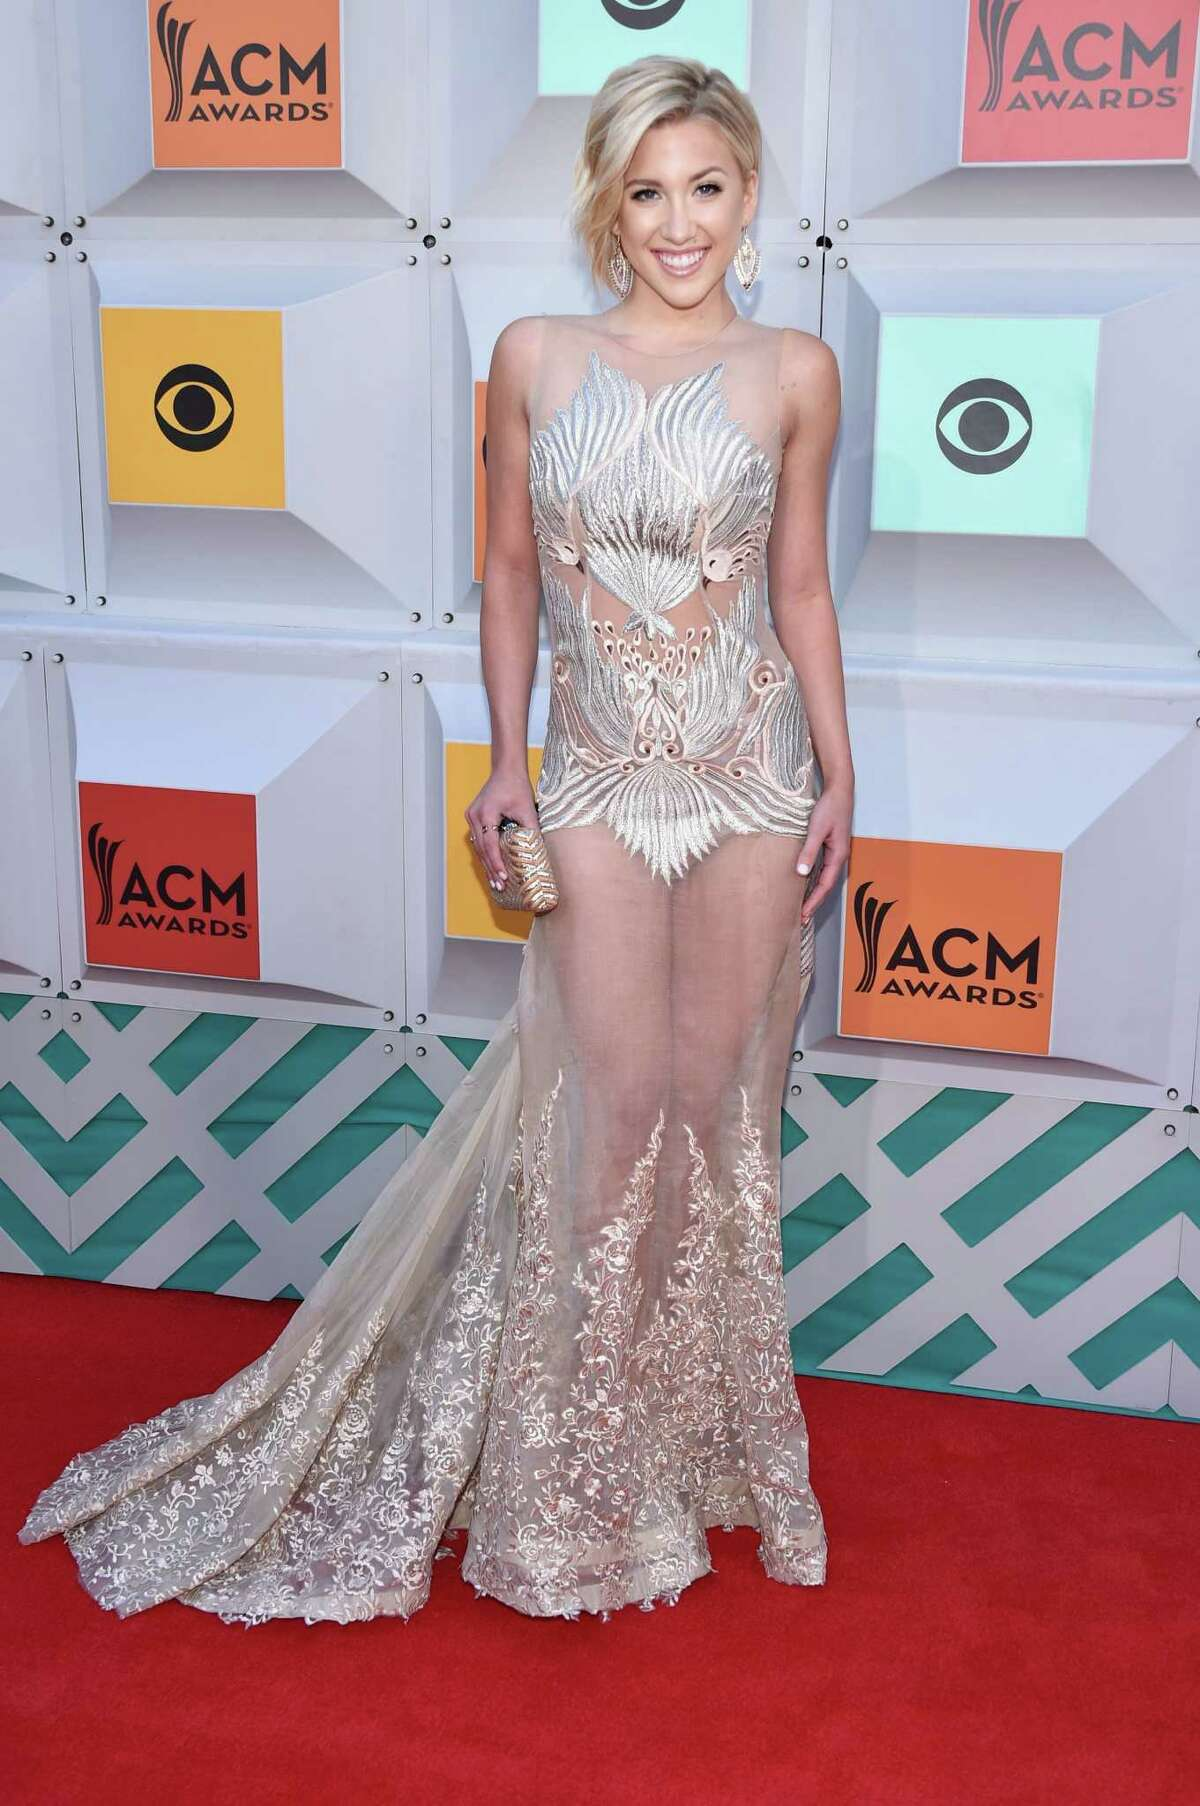 Best: Savannah Chrisley Look, the naked dress will never die, so let's just succumb already. The TV personality does look amazing, nothing inappropriate is happening - naked dress success.